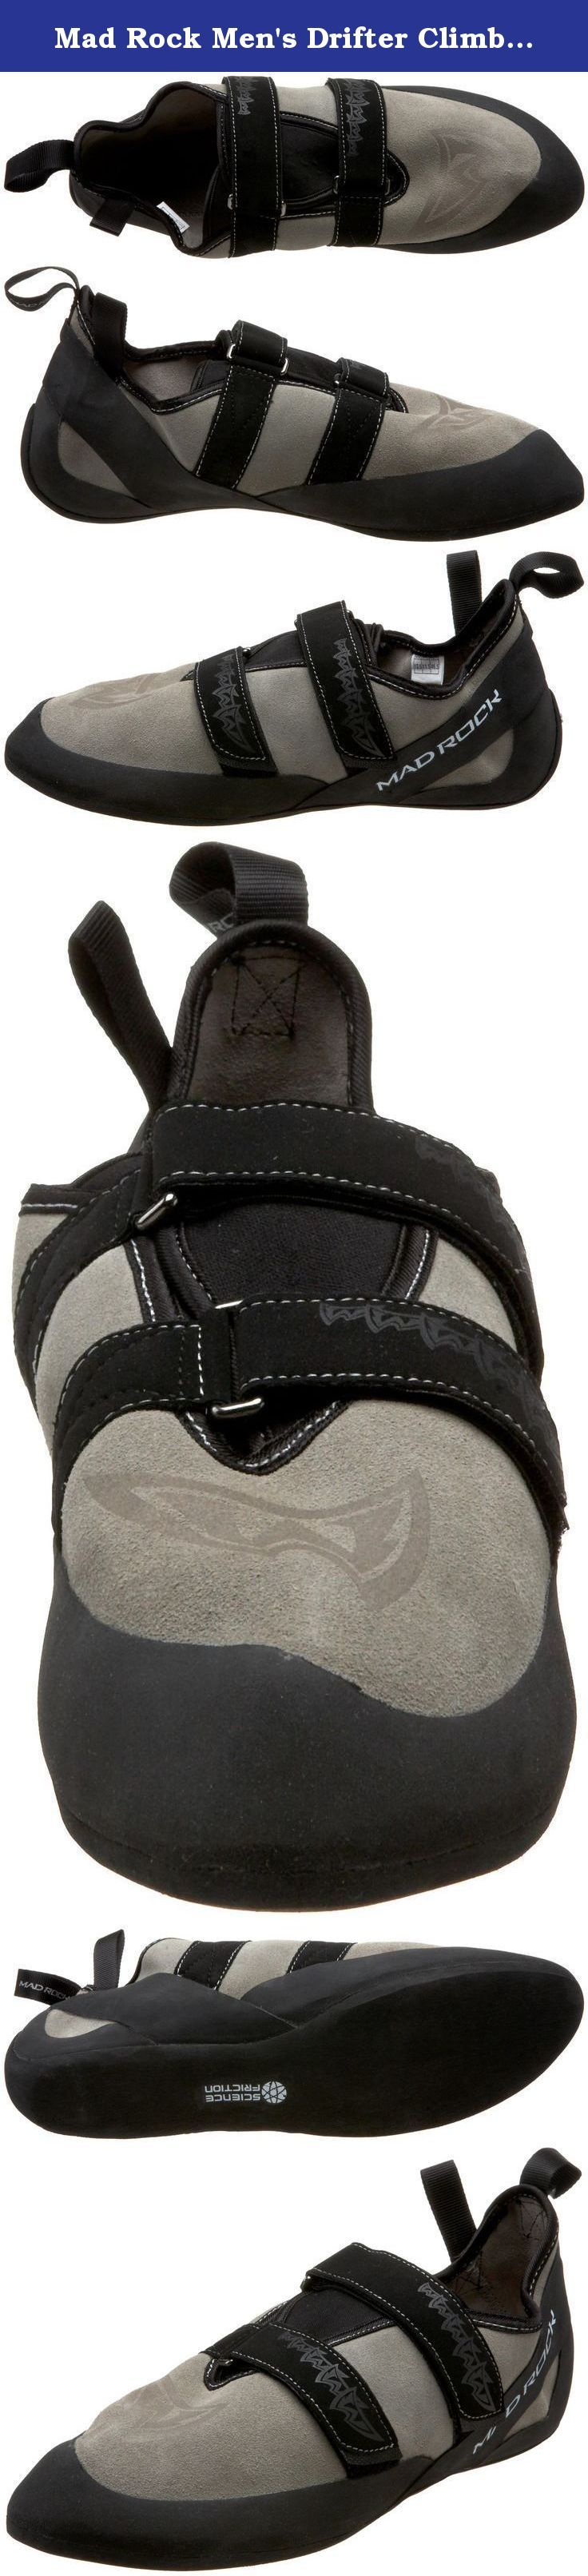 Mad Rock Men's Drifter Climbing Shoe,Grey ,9 D US. Don't let this shoe's looks fool you. Having climbed grades up to V15, the Drifter proves an astonishingly great value. By steering clear of some of Mad Rock's more technical features, this wallet friendly classic puts competition on it's wake.